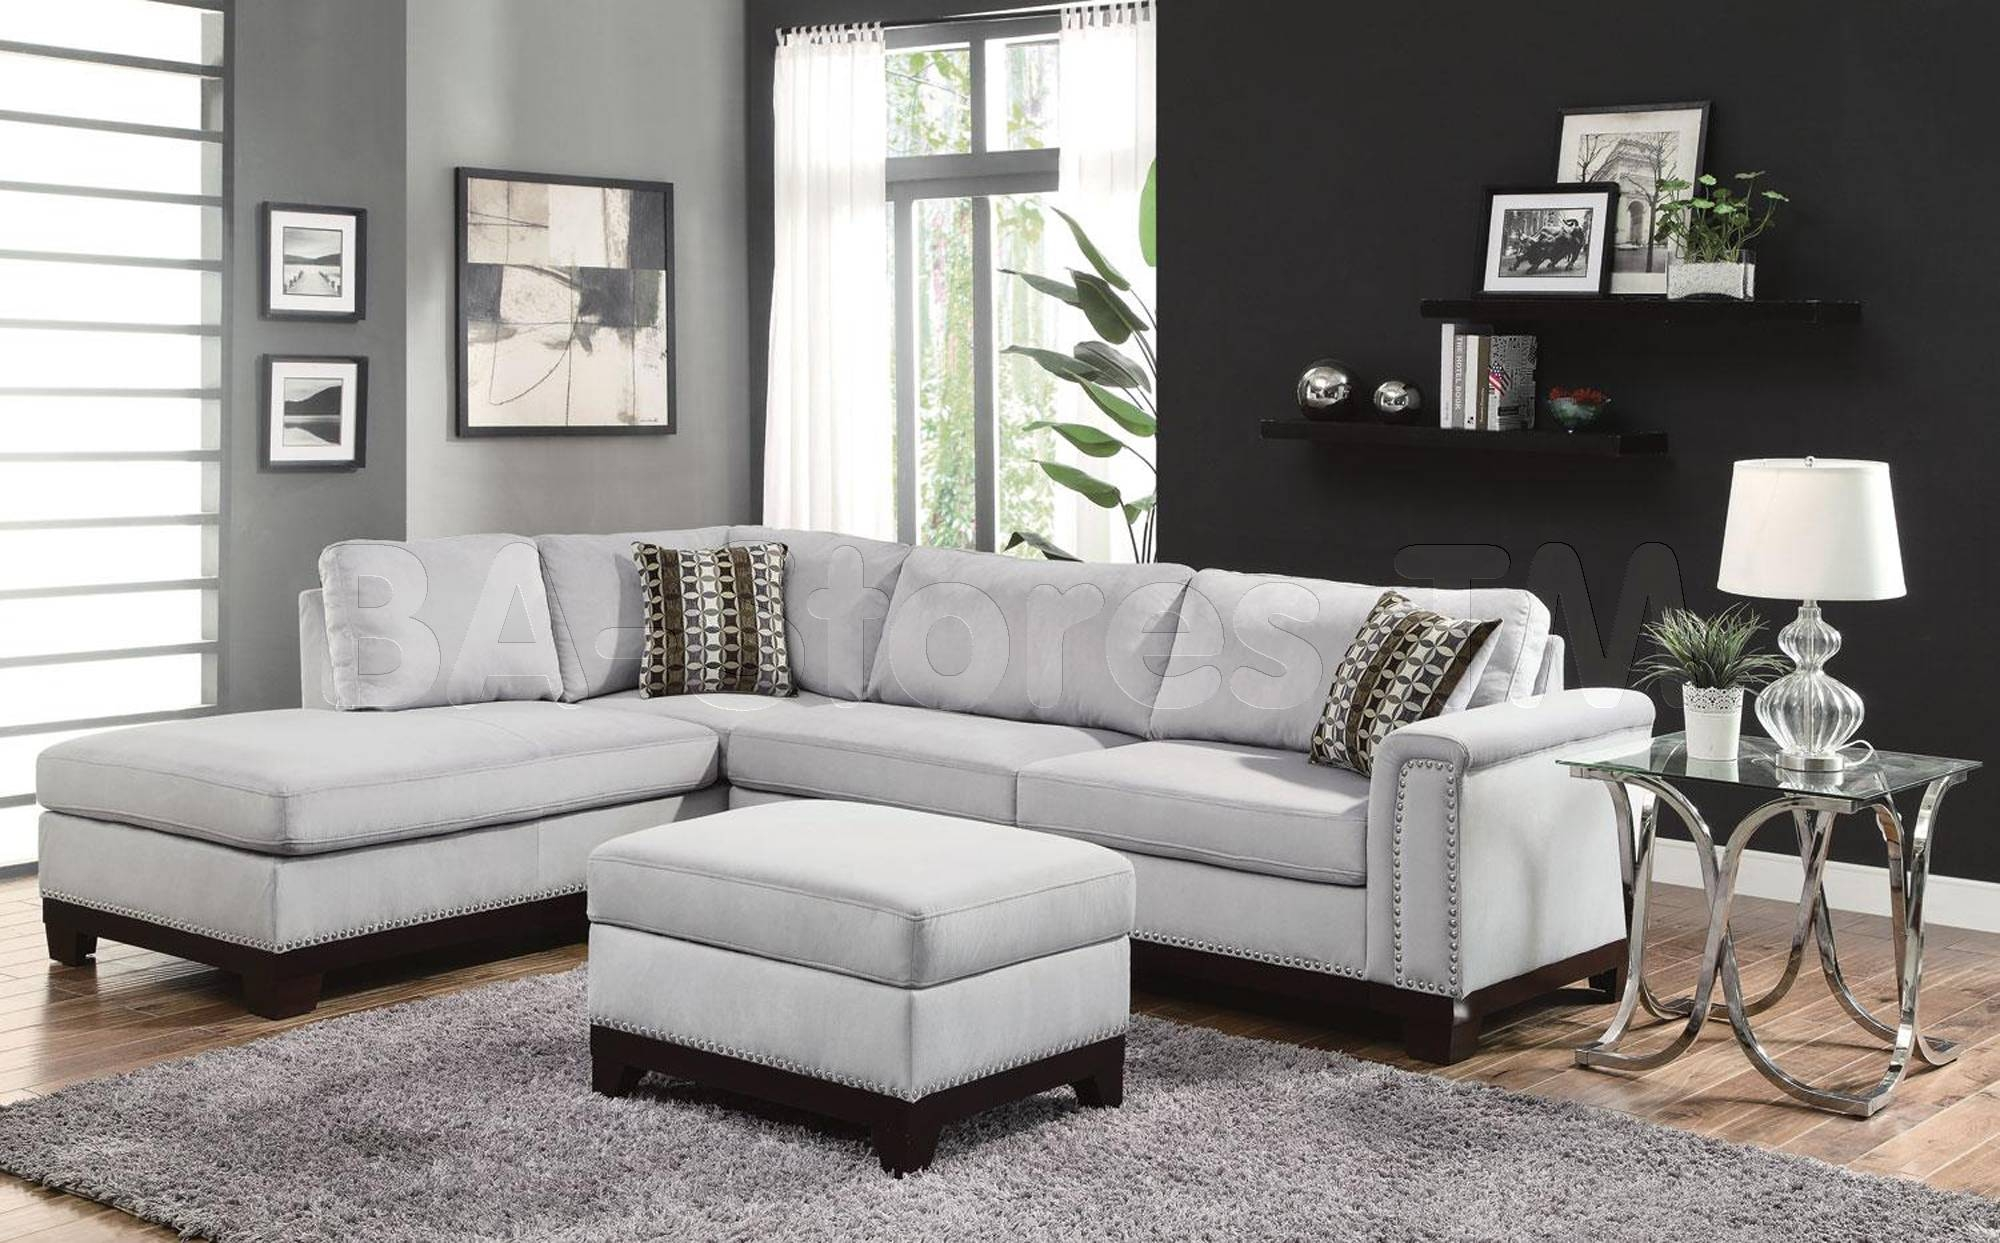 Wonderful Sectional Sofa With Nailhead Trim 55 On Extra Wide regarding Extra Wide Sectional Sofas (Image 30 of 30)